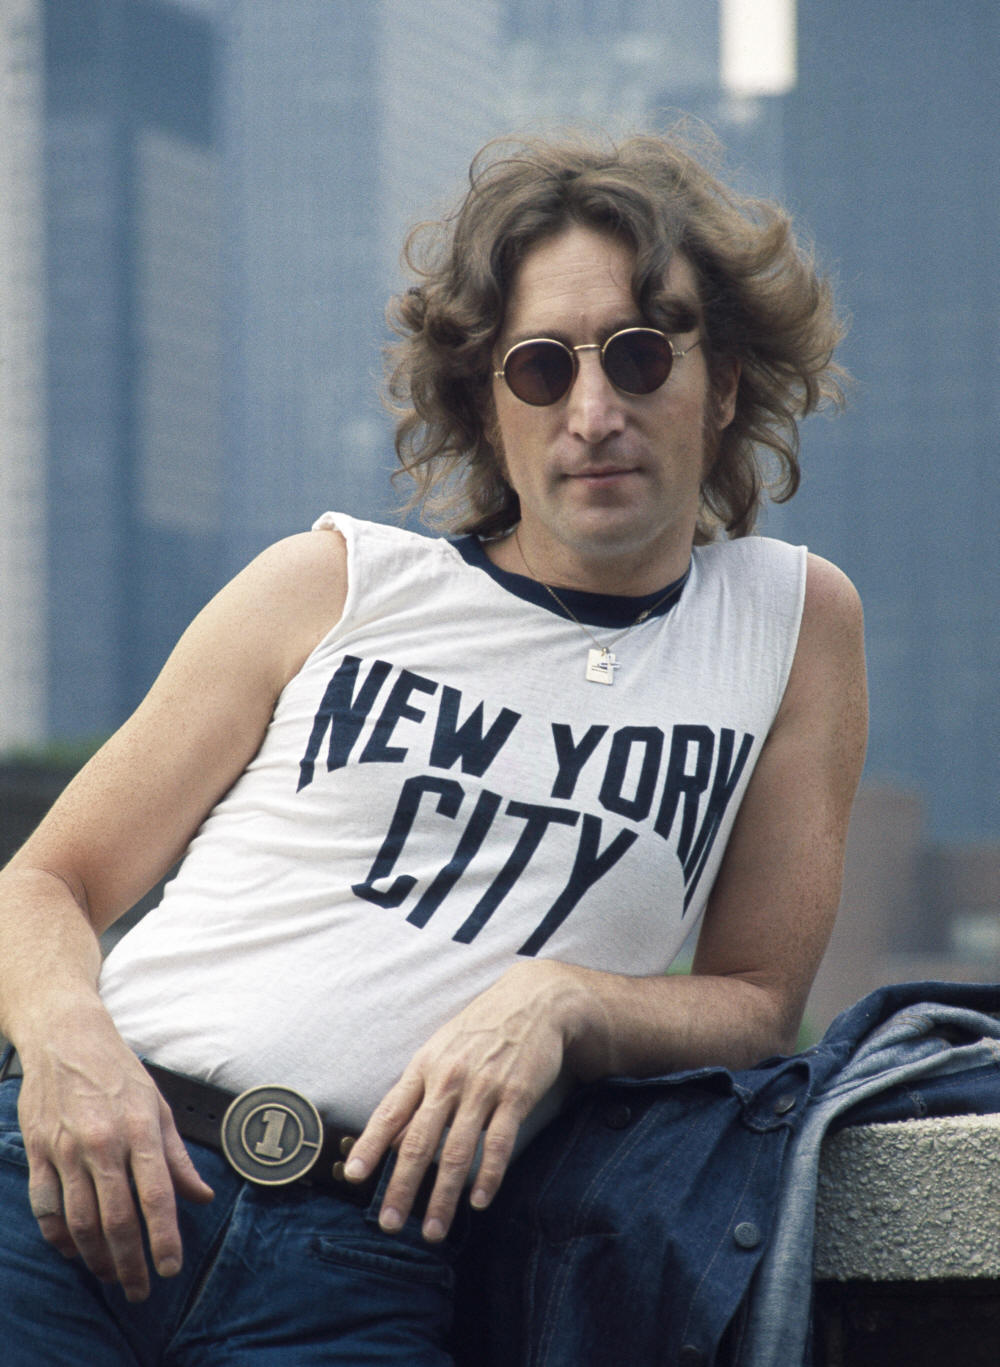 John Lennon Bob Gruen New York City Shirt Location New York